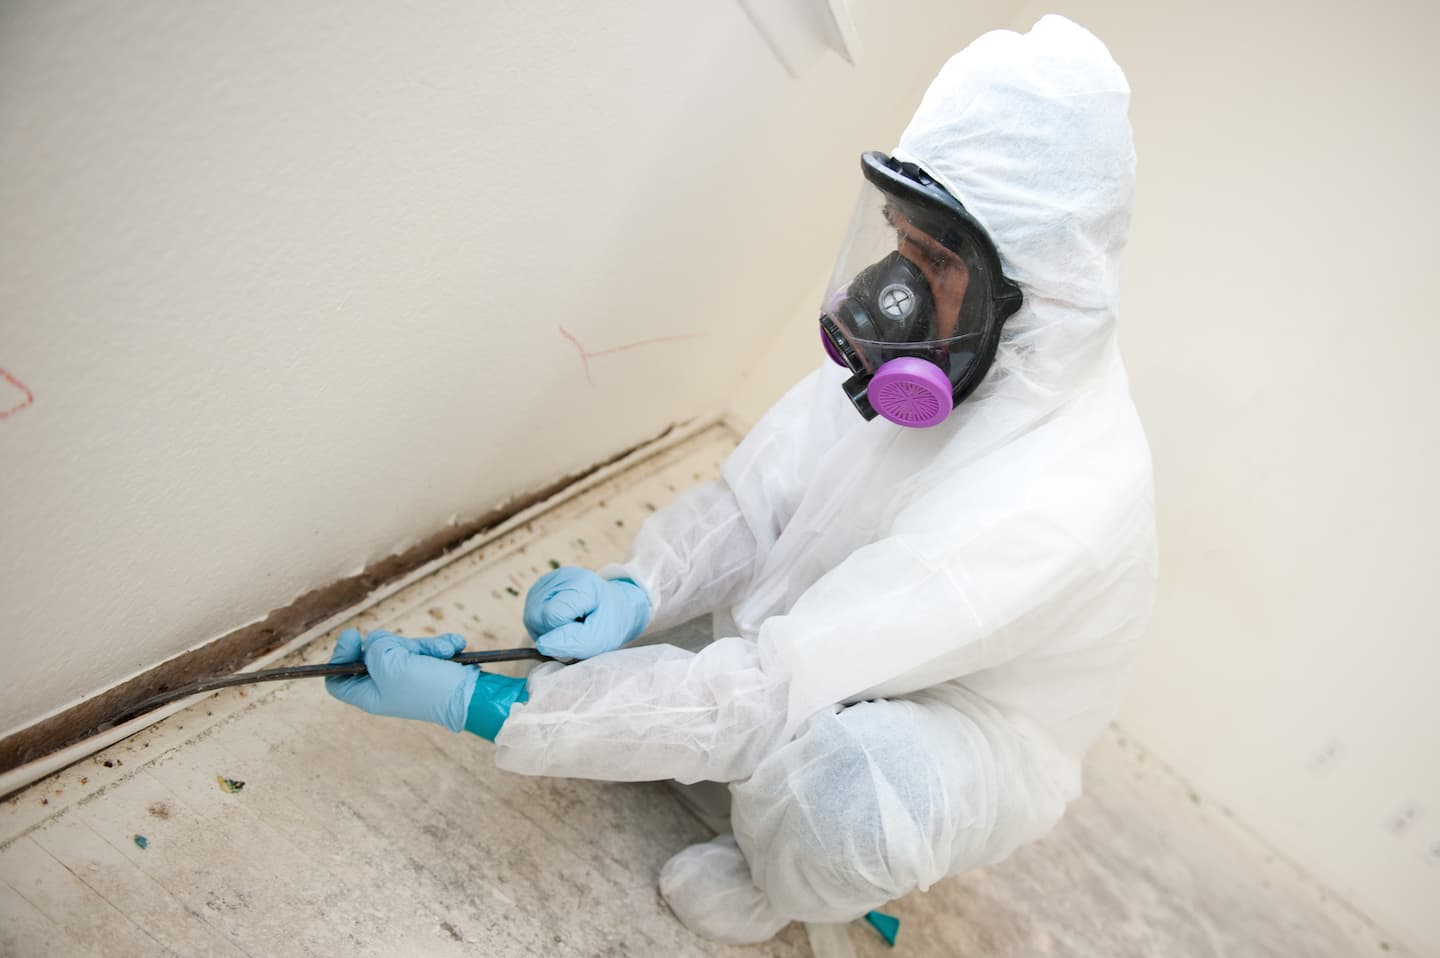 Black mold inspection cost - Black Mold Inspection Cost 18